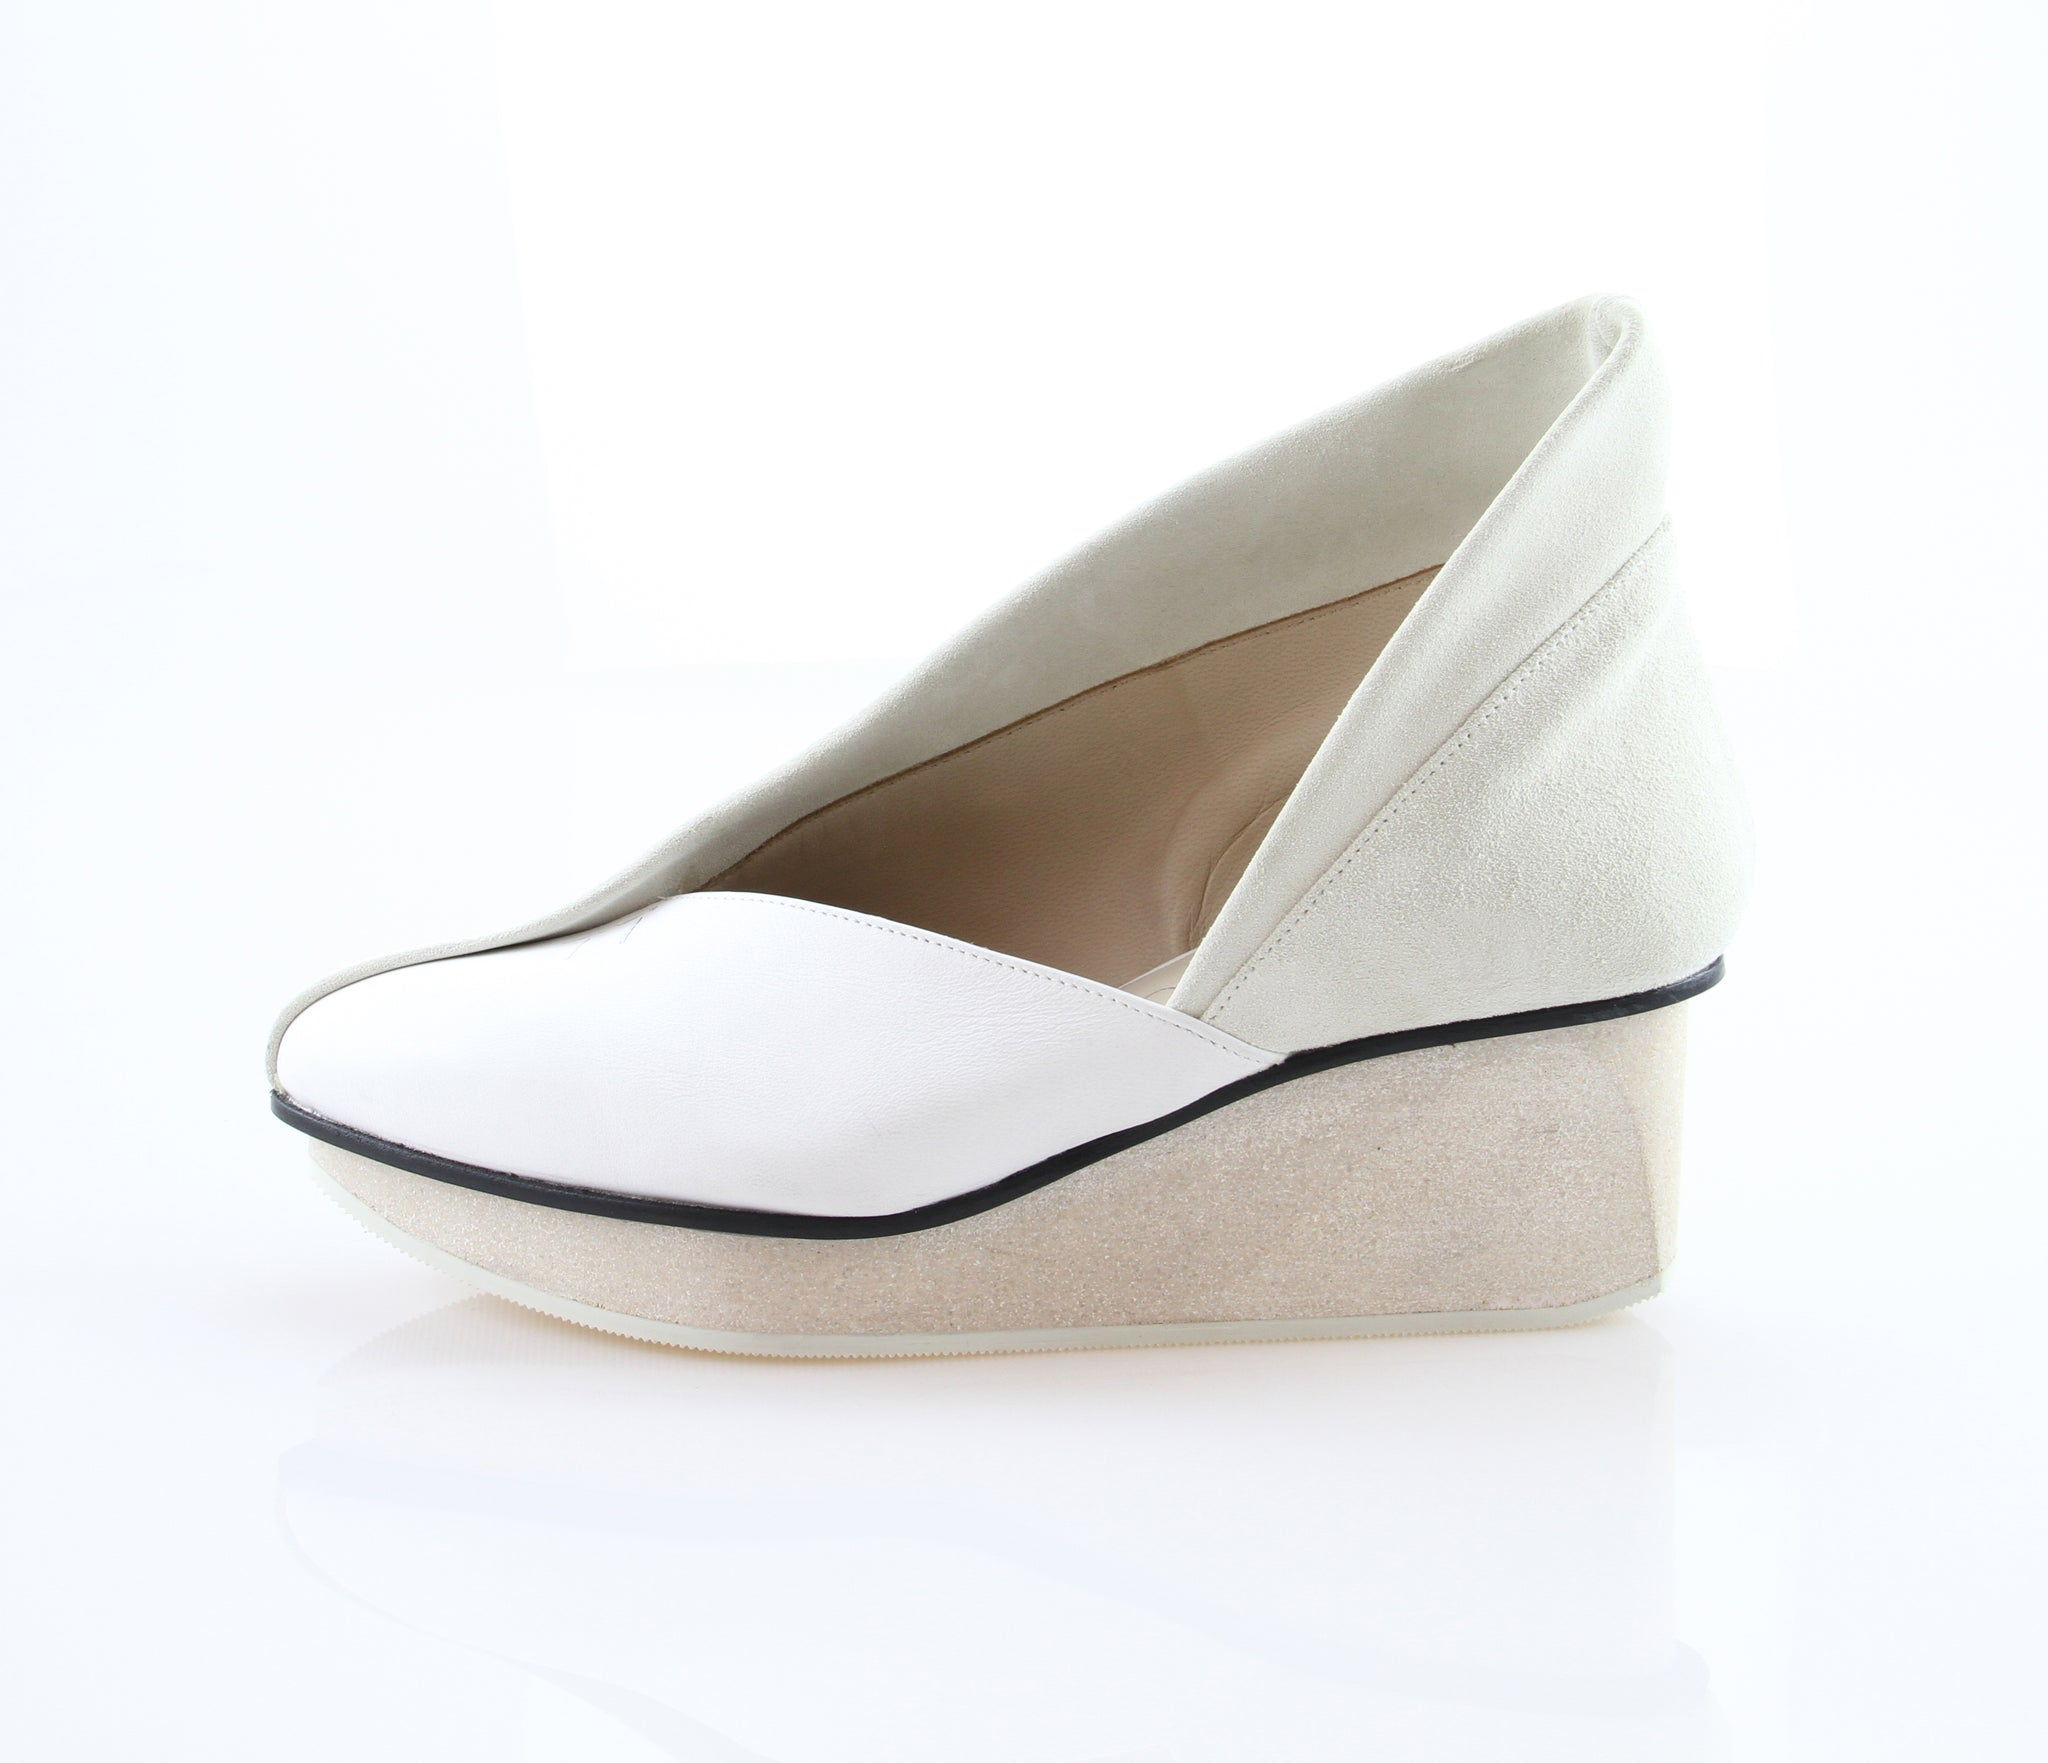 TRIPTYCH WOMEN'S WHITE LEATHER WEDGE SHOE